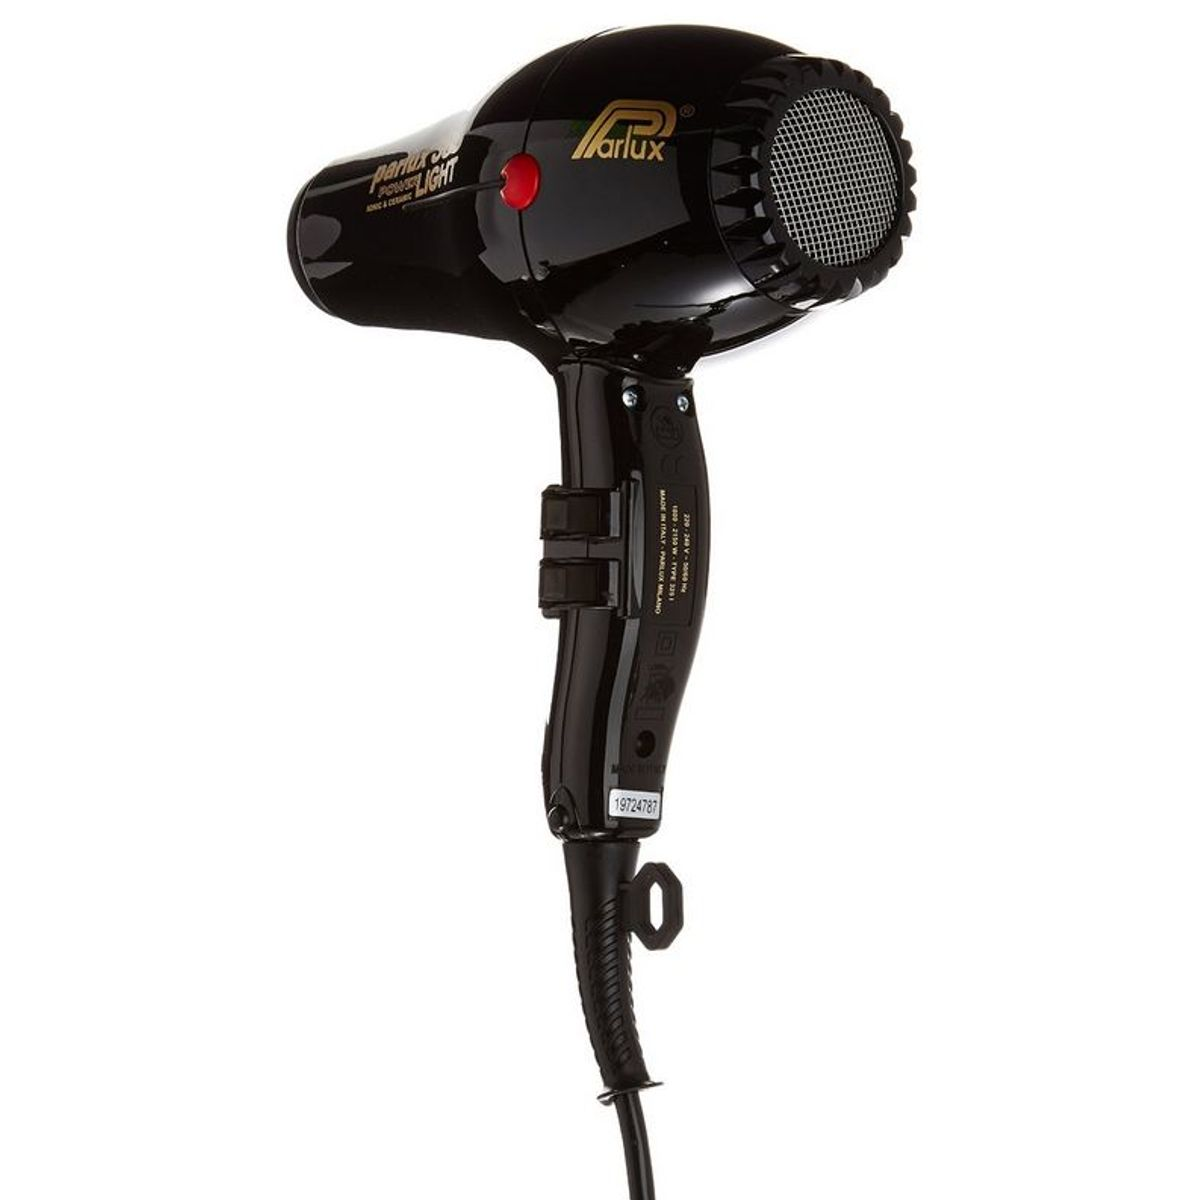 Parlux 385 Power Light schwarz